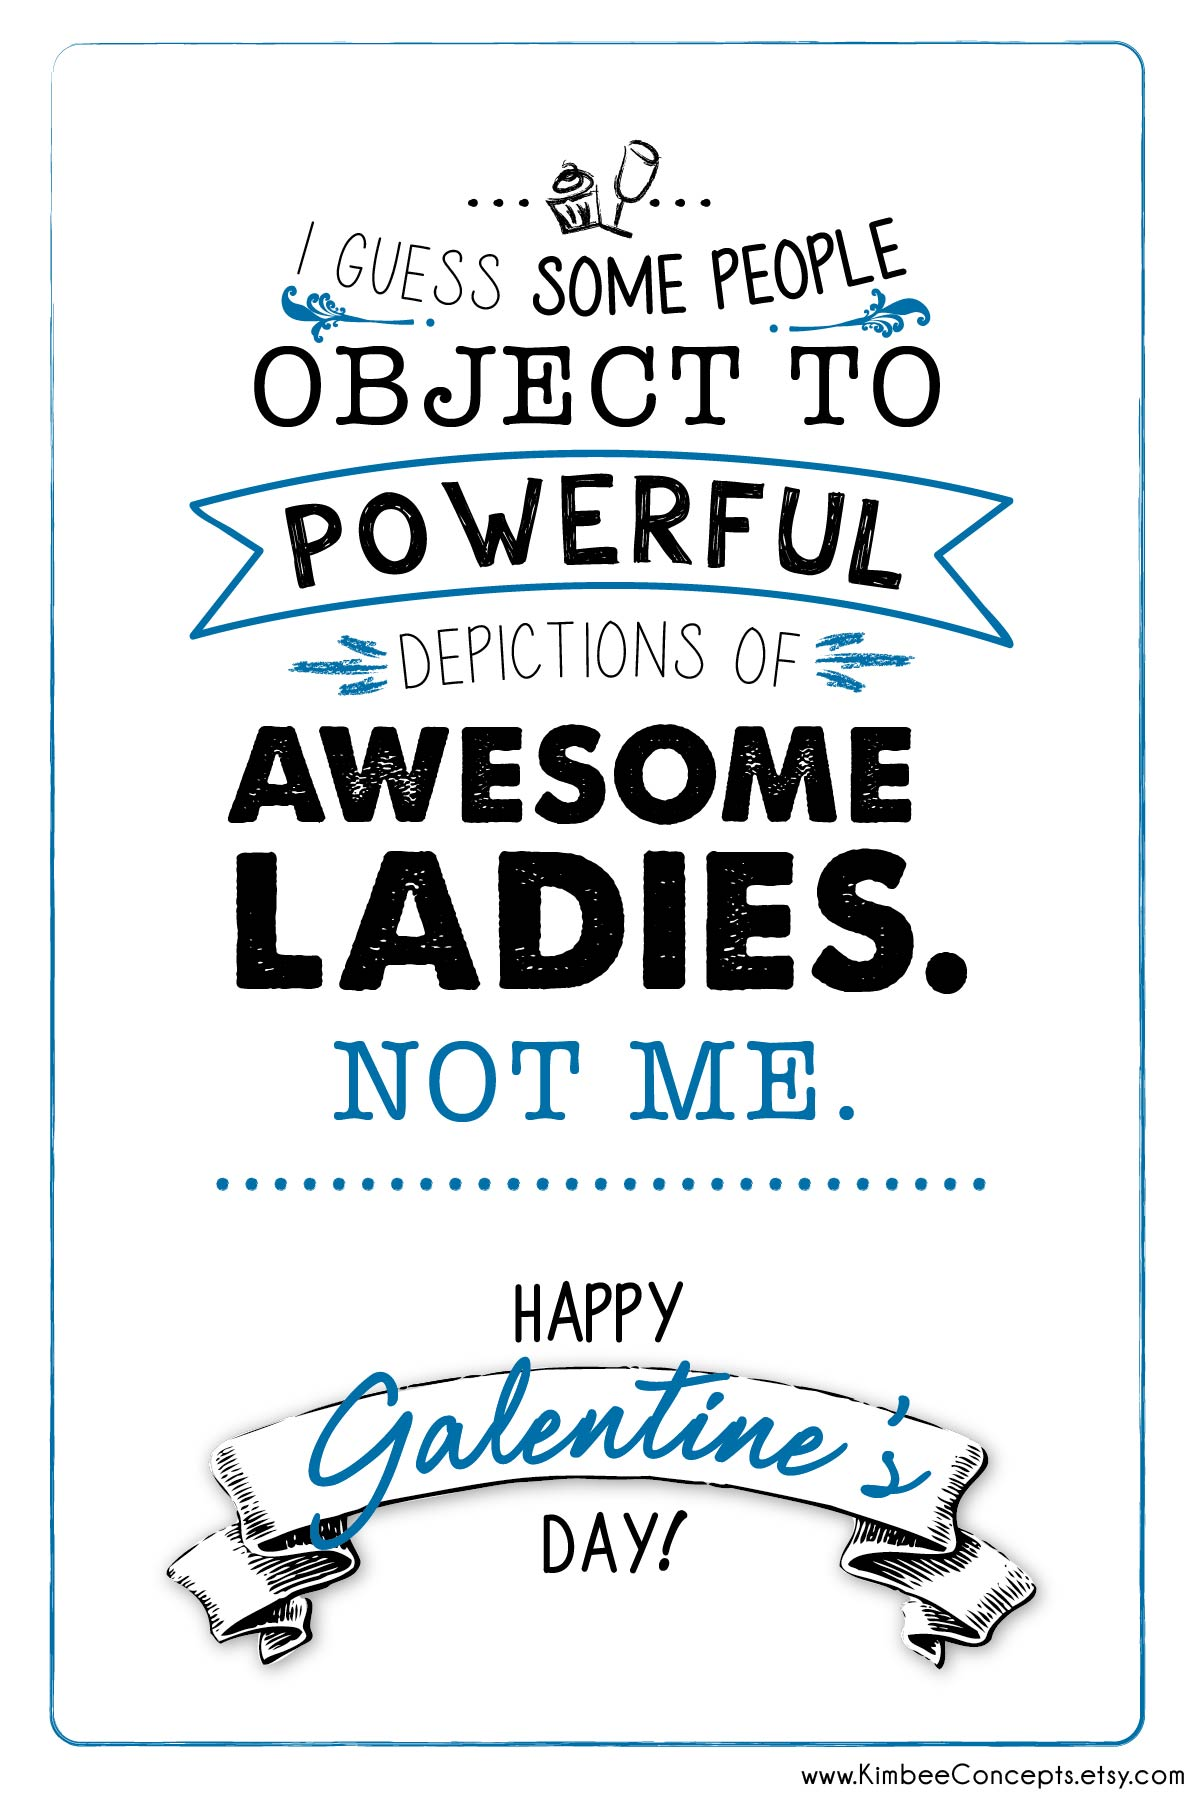 Free Galentines Day Card Powerful Women